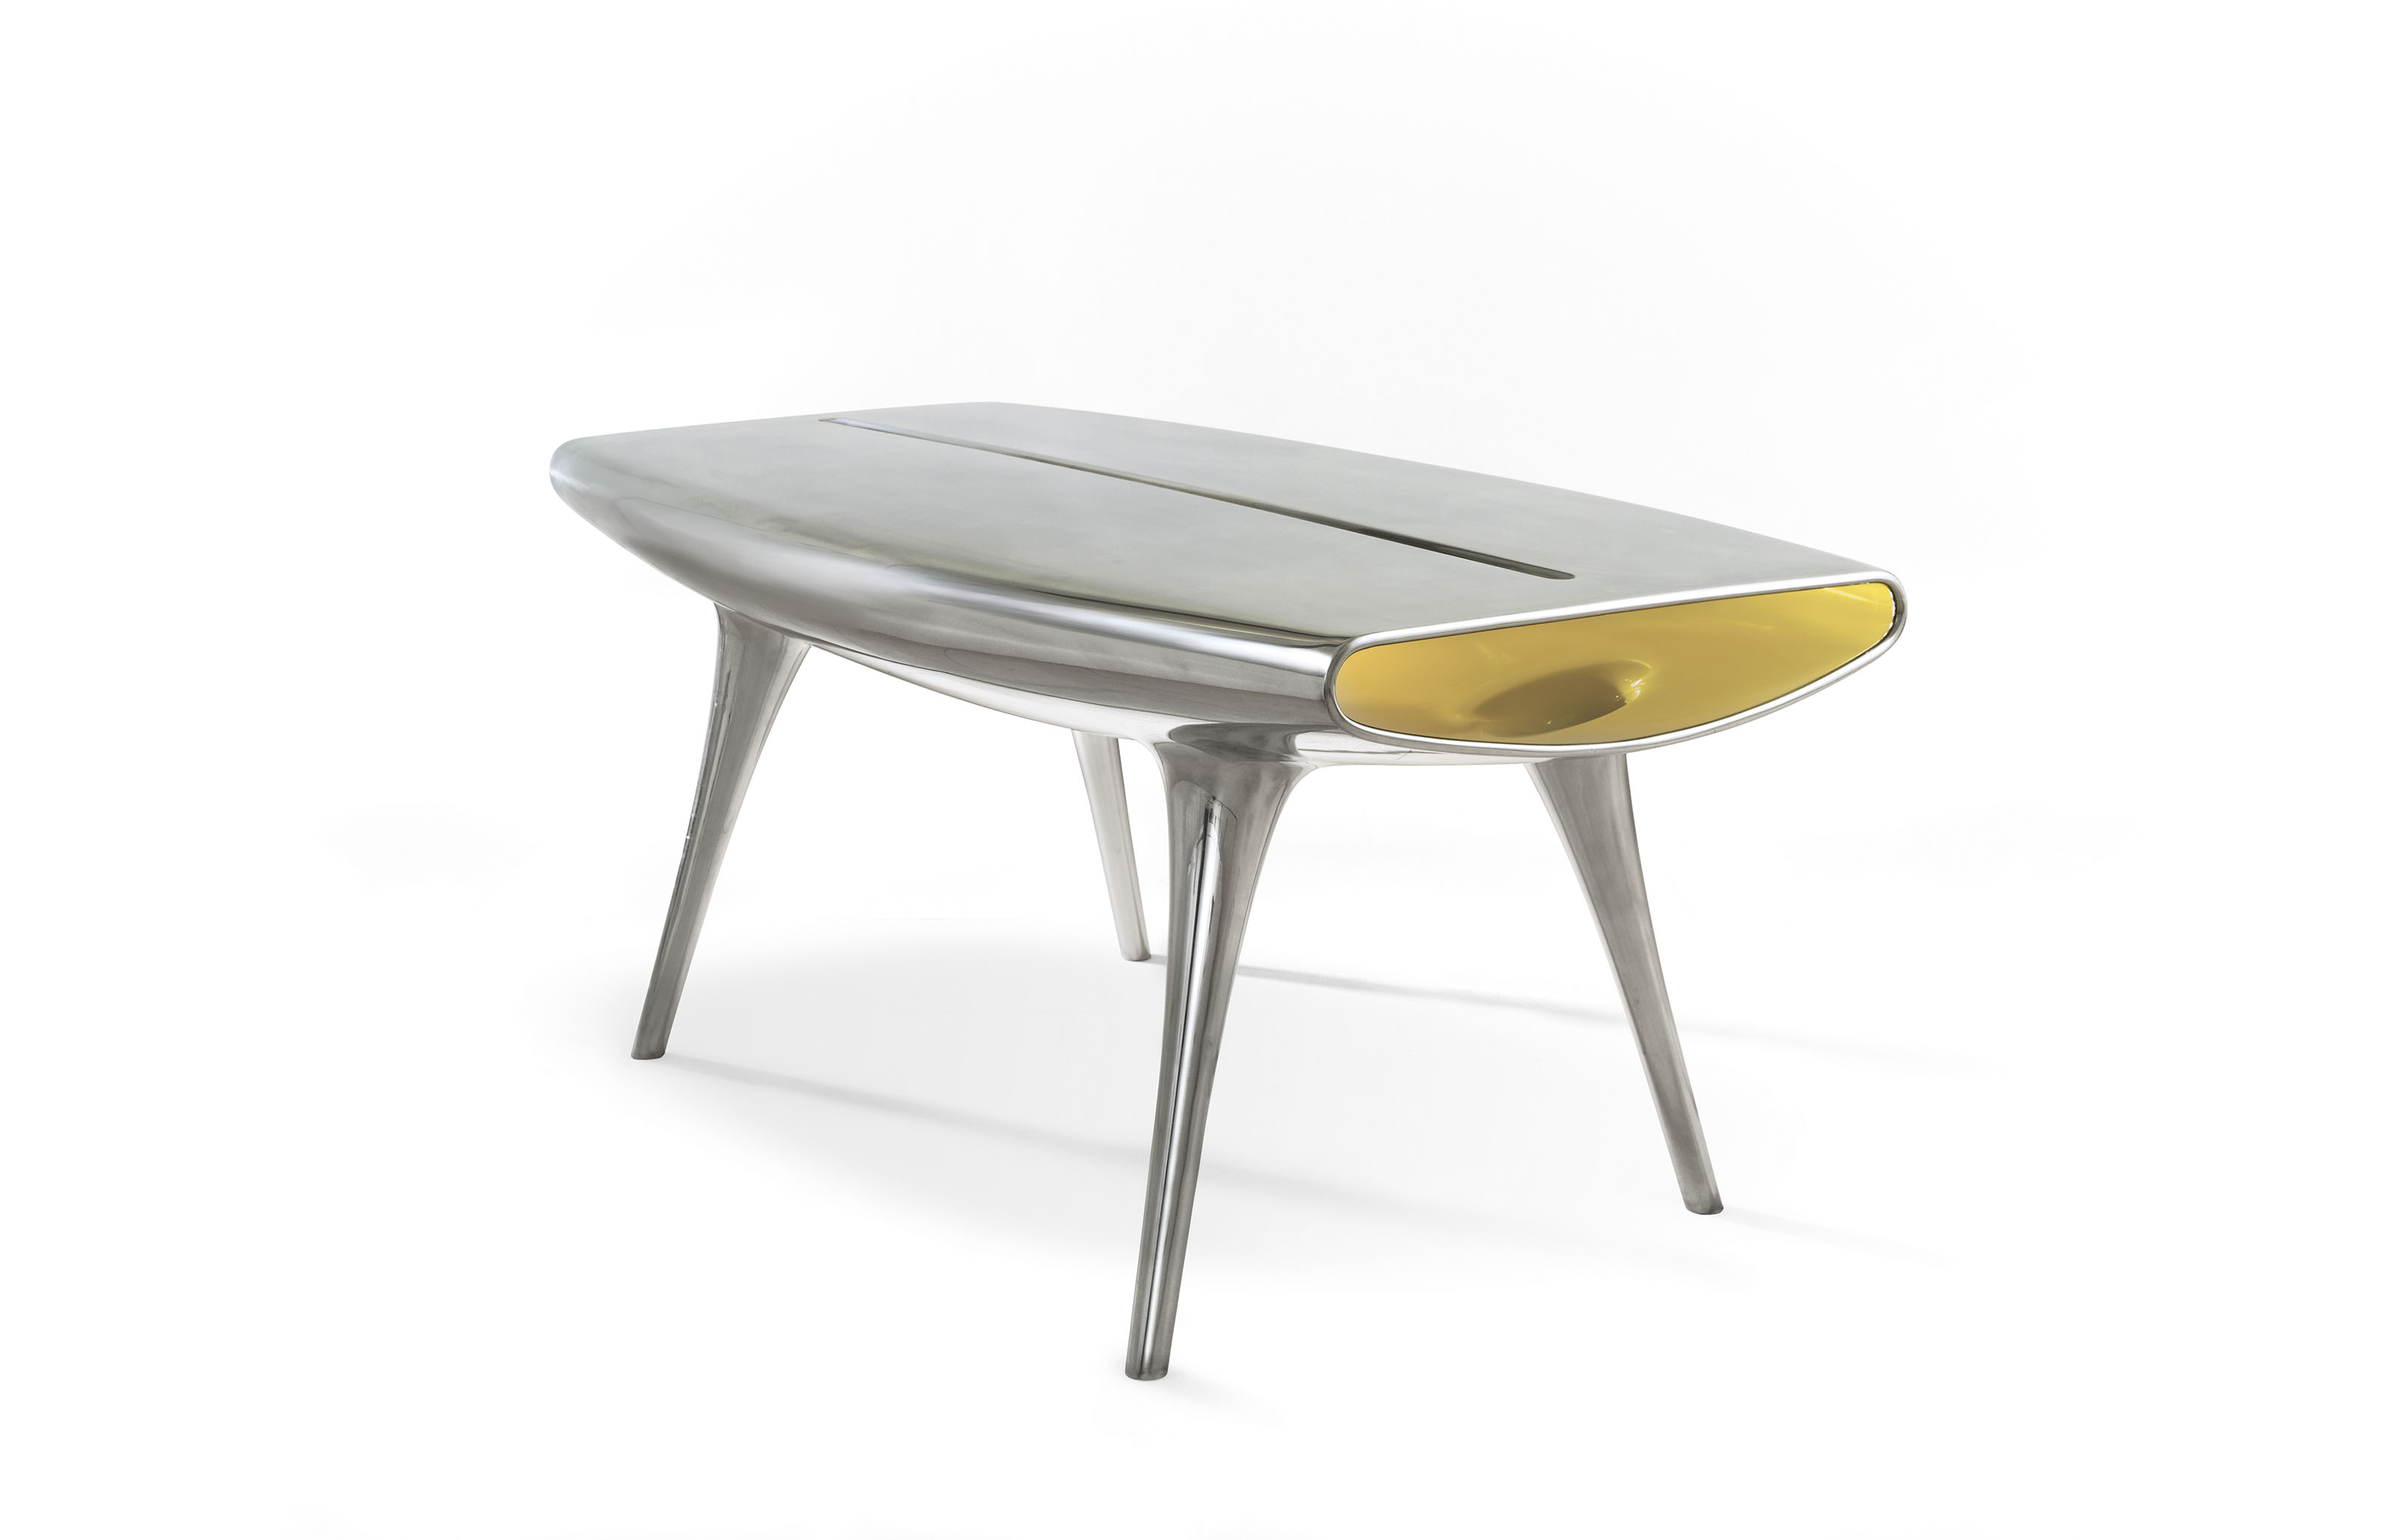 Marc Newson (b. 1963), Event Horizon Table. 31¾ x 71 x 38  in (80.5 x 180 x 96.5  cm). Estimate £100,000-150,000. This lot is offered in Masterpieces of Design & Photography on 3 October 2017  at Christie's in London